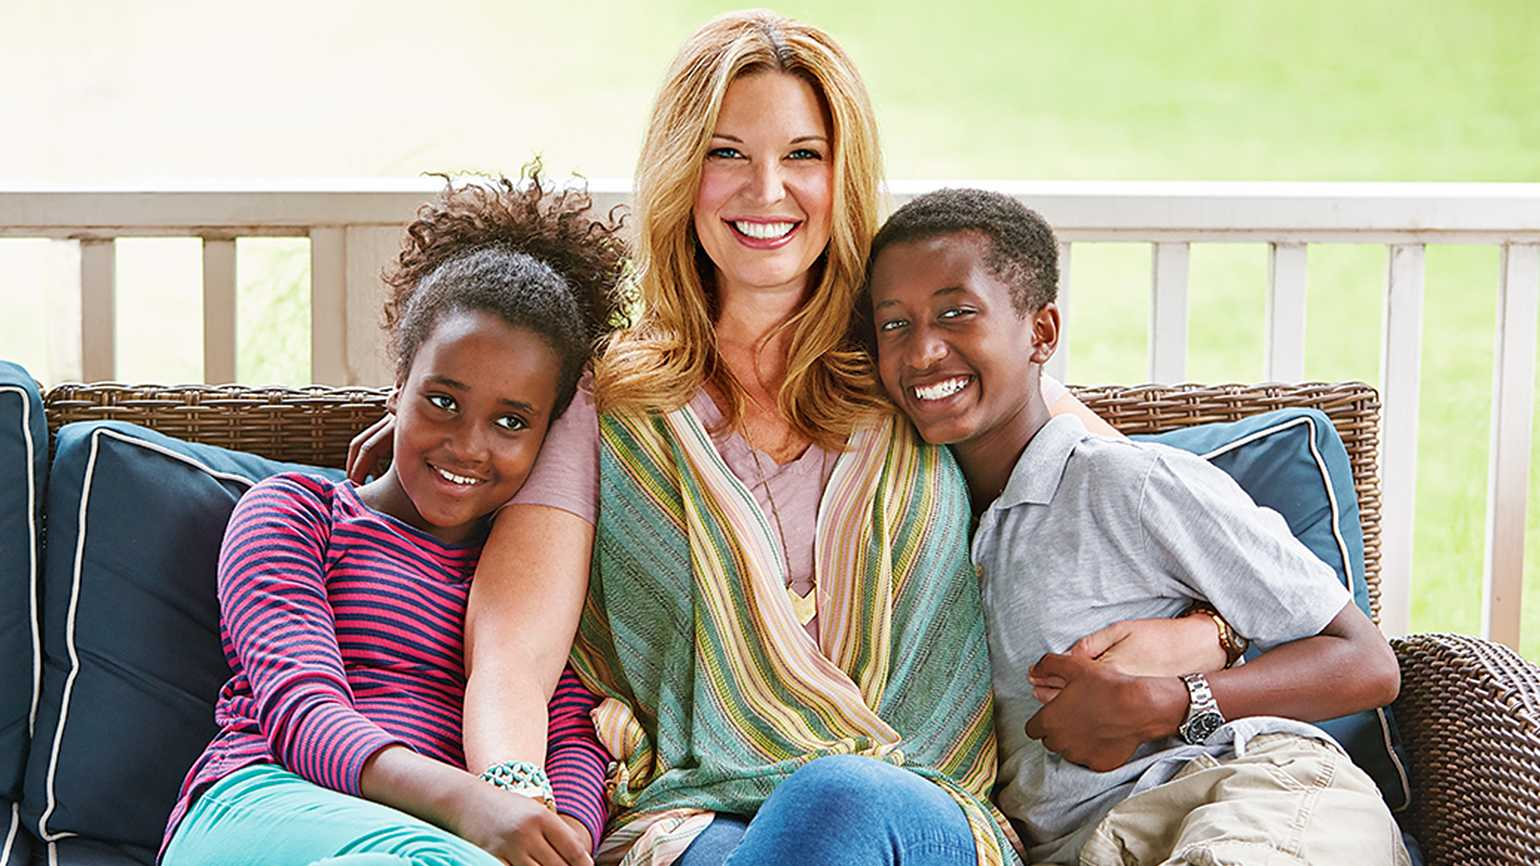 Jen Hatmaker, with her kids Remy and Ben